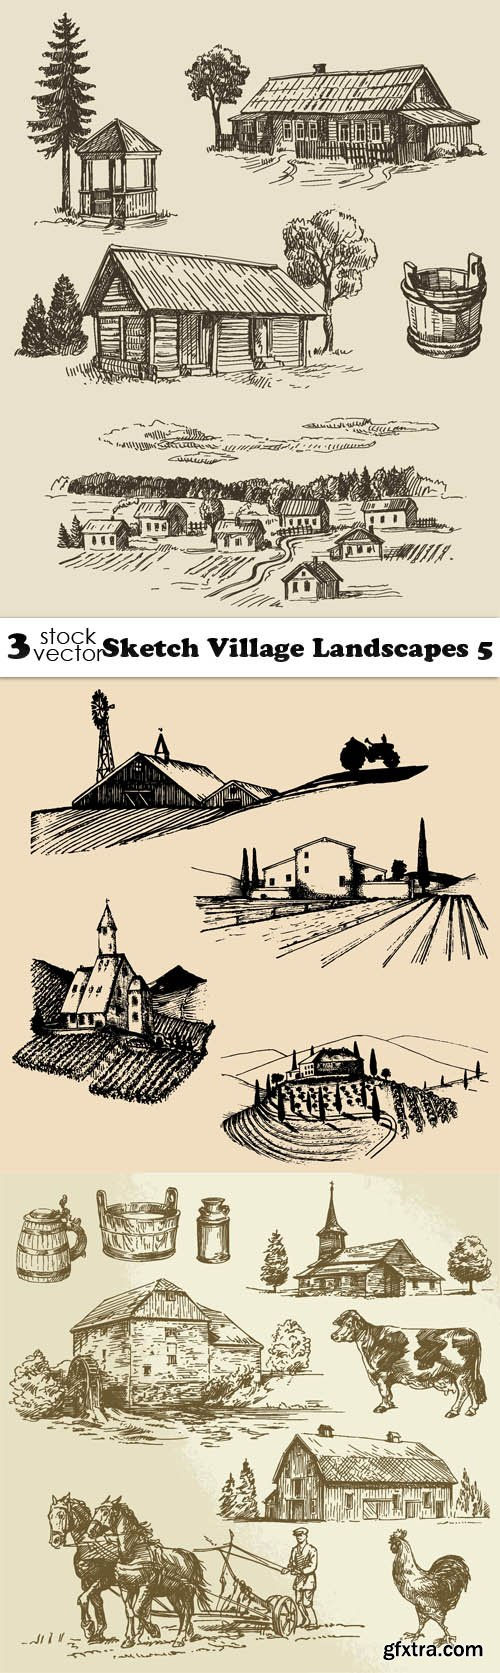 Vectors - Sketch Village Landscapes 5